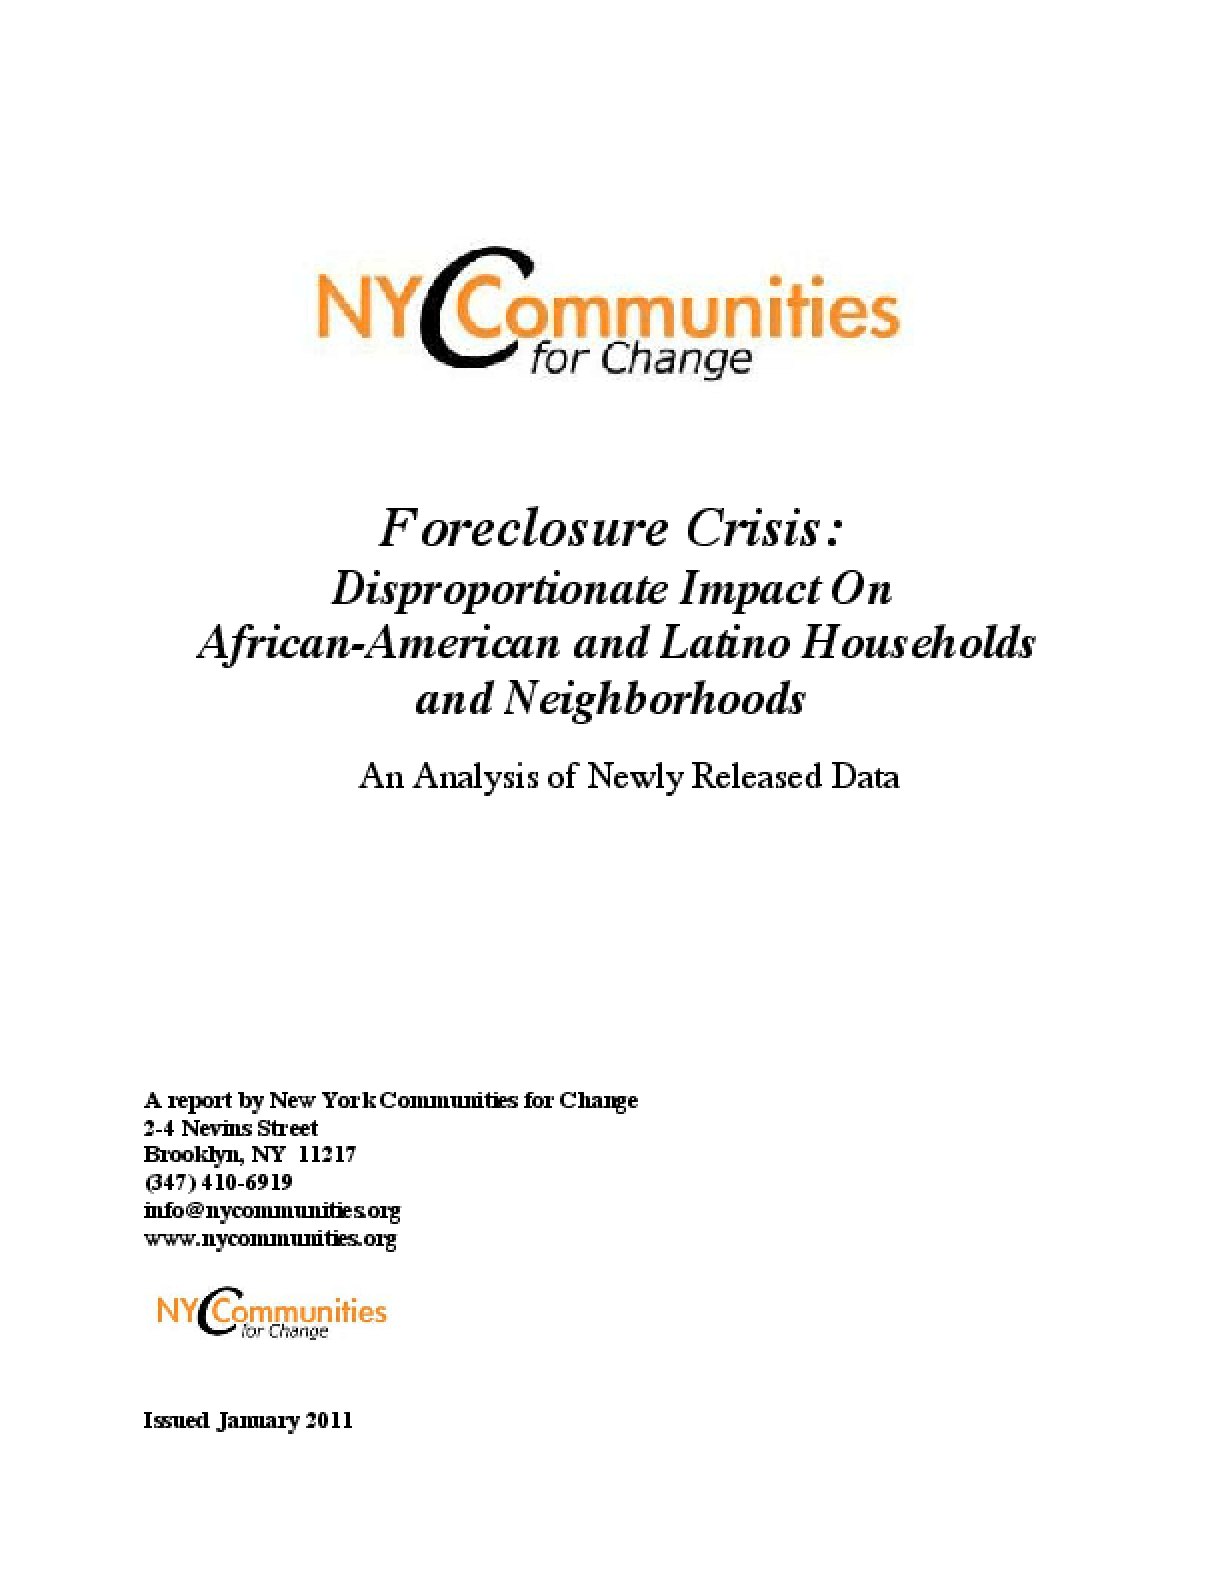 Foreclosure Crisis: Disproportionate Impact On African-American and Latino Households and Neighborhoods